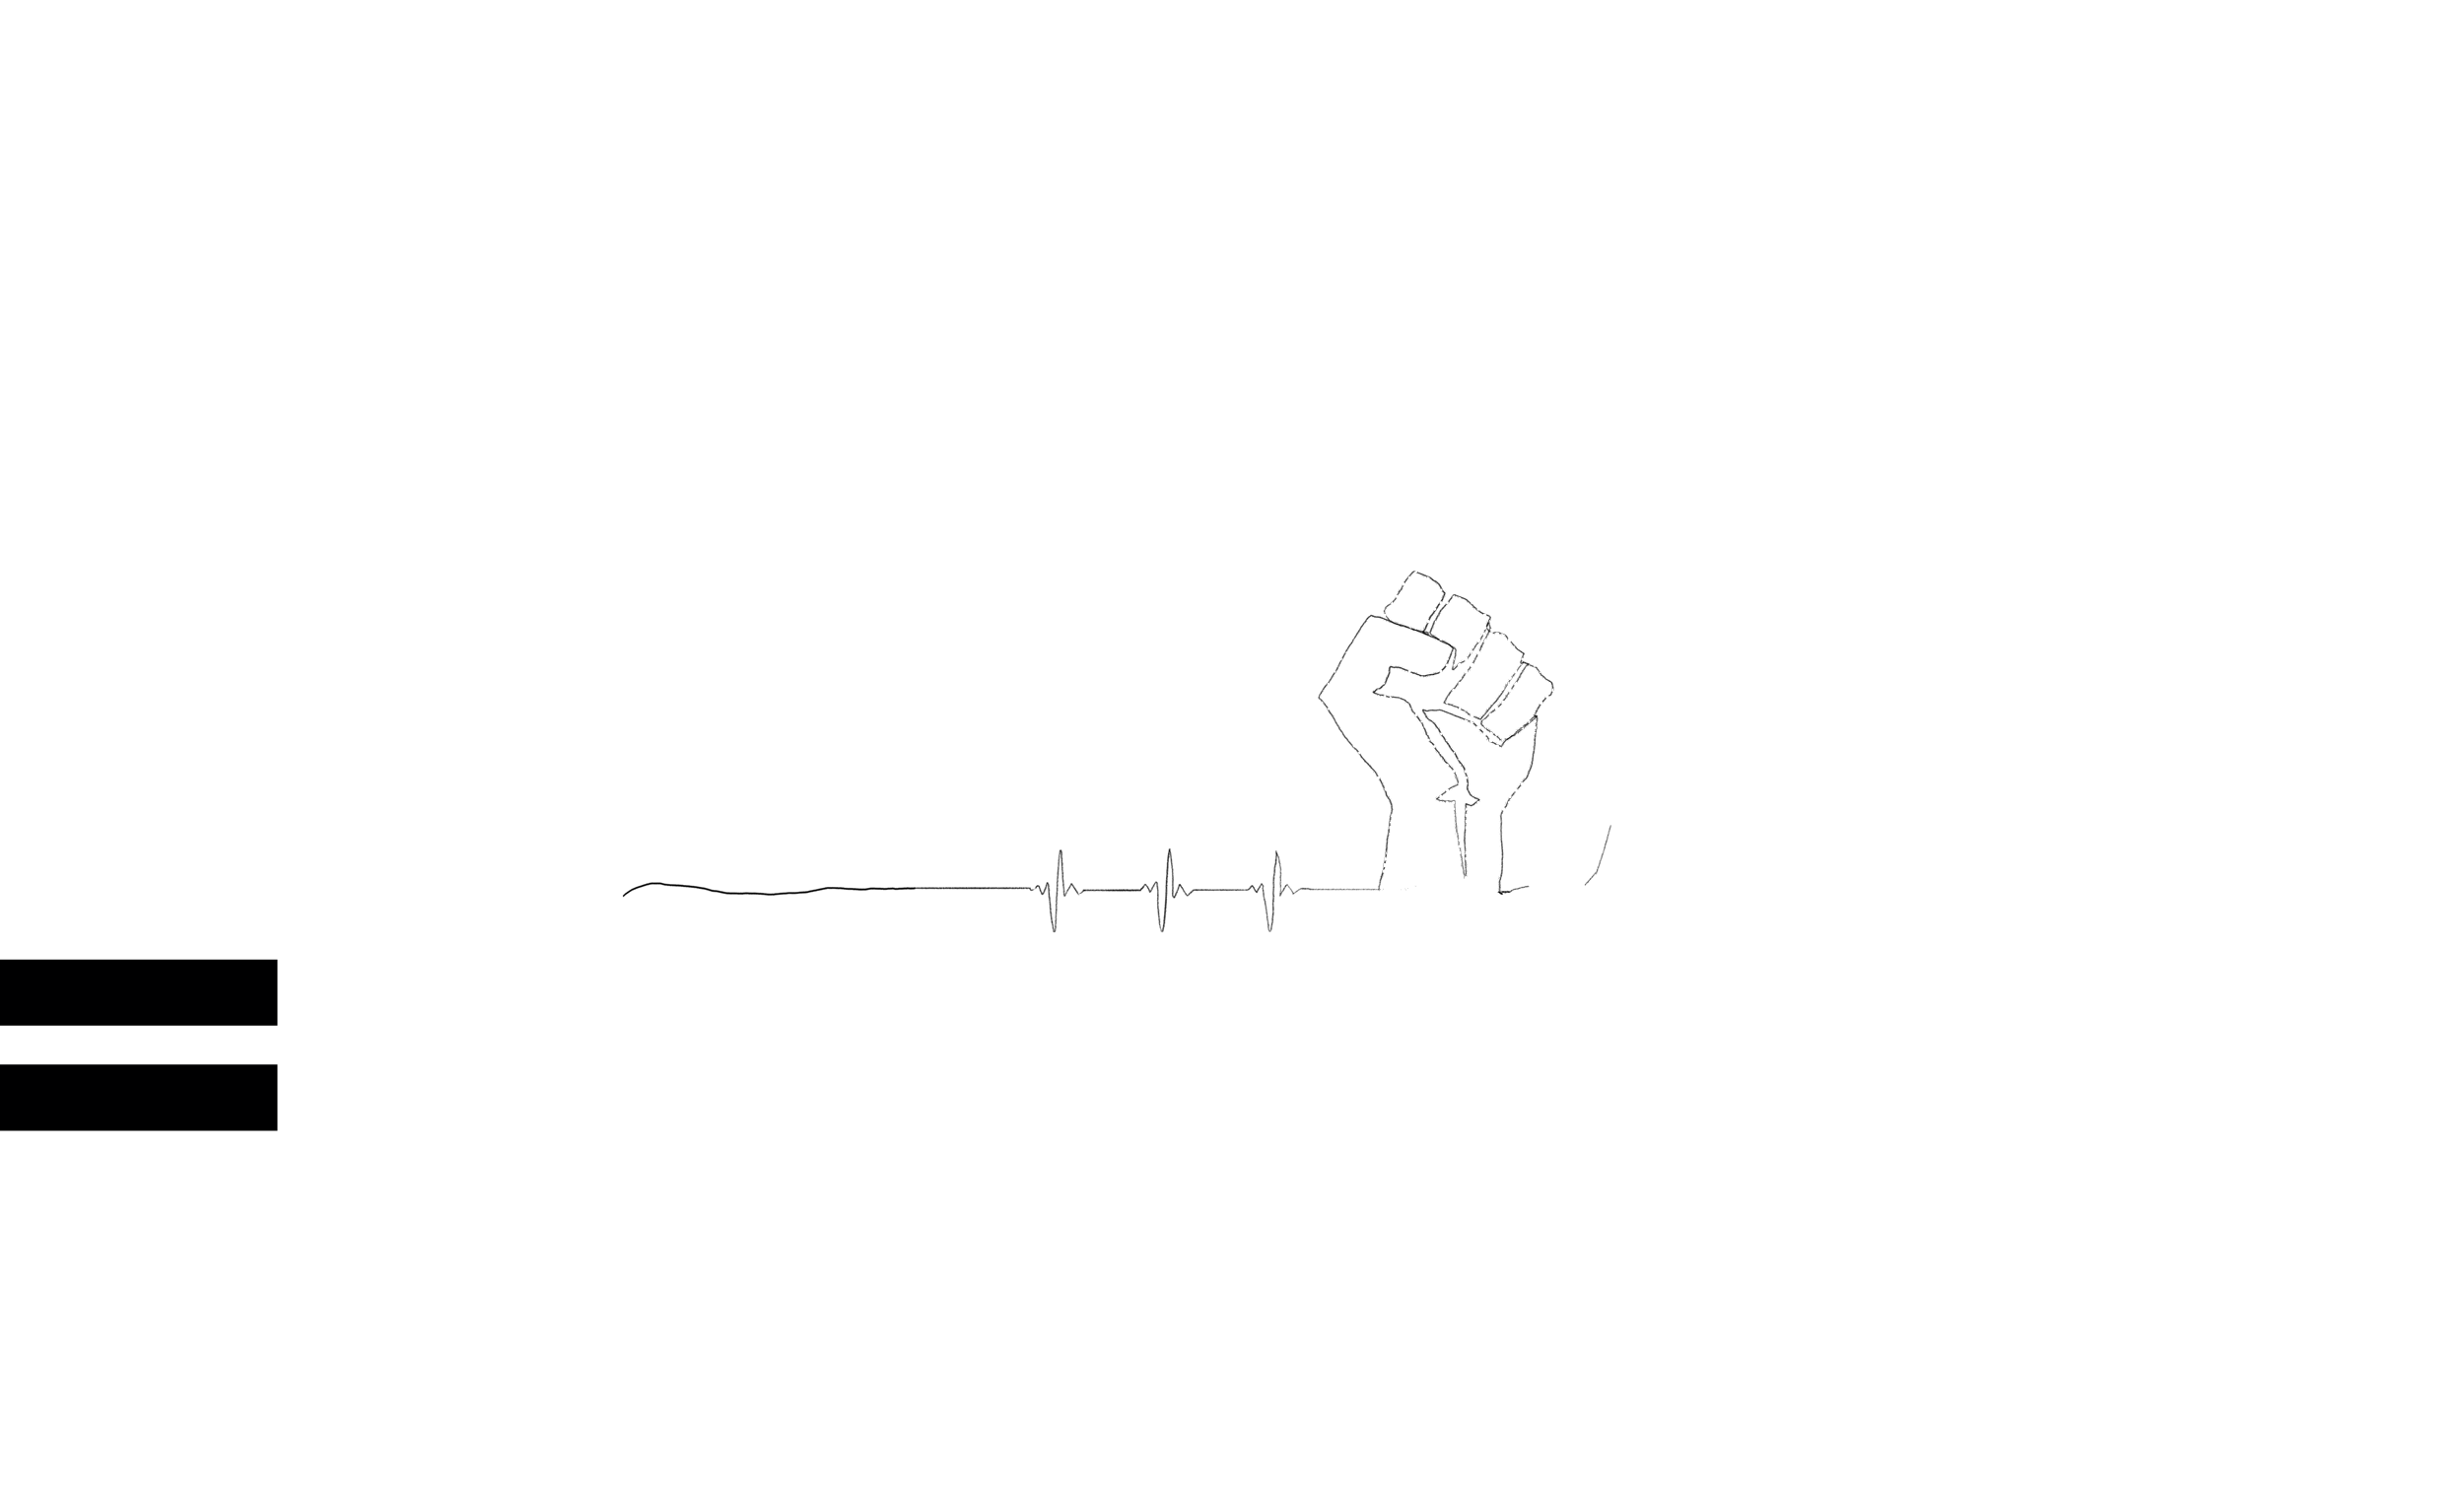 Illustration of a fist raise in protest